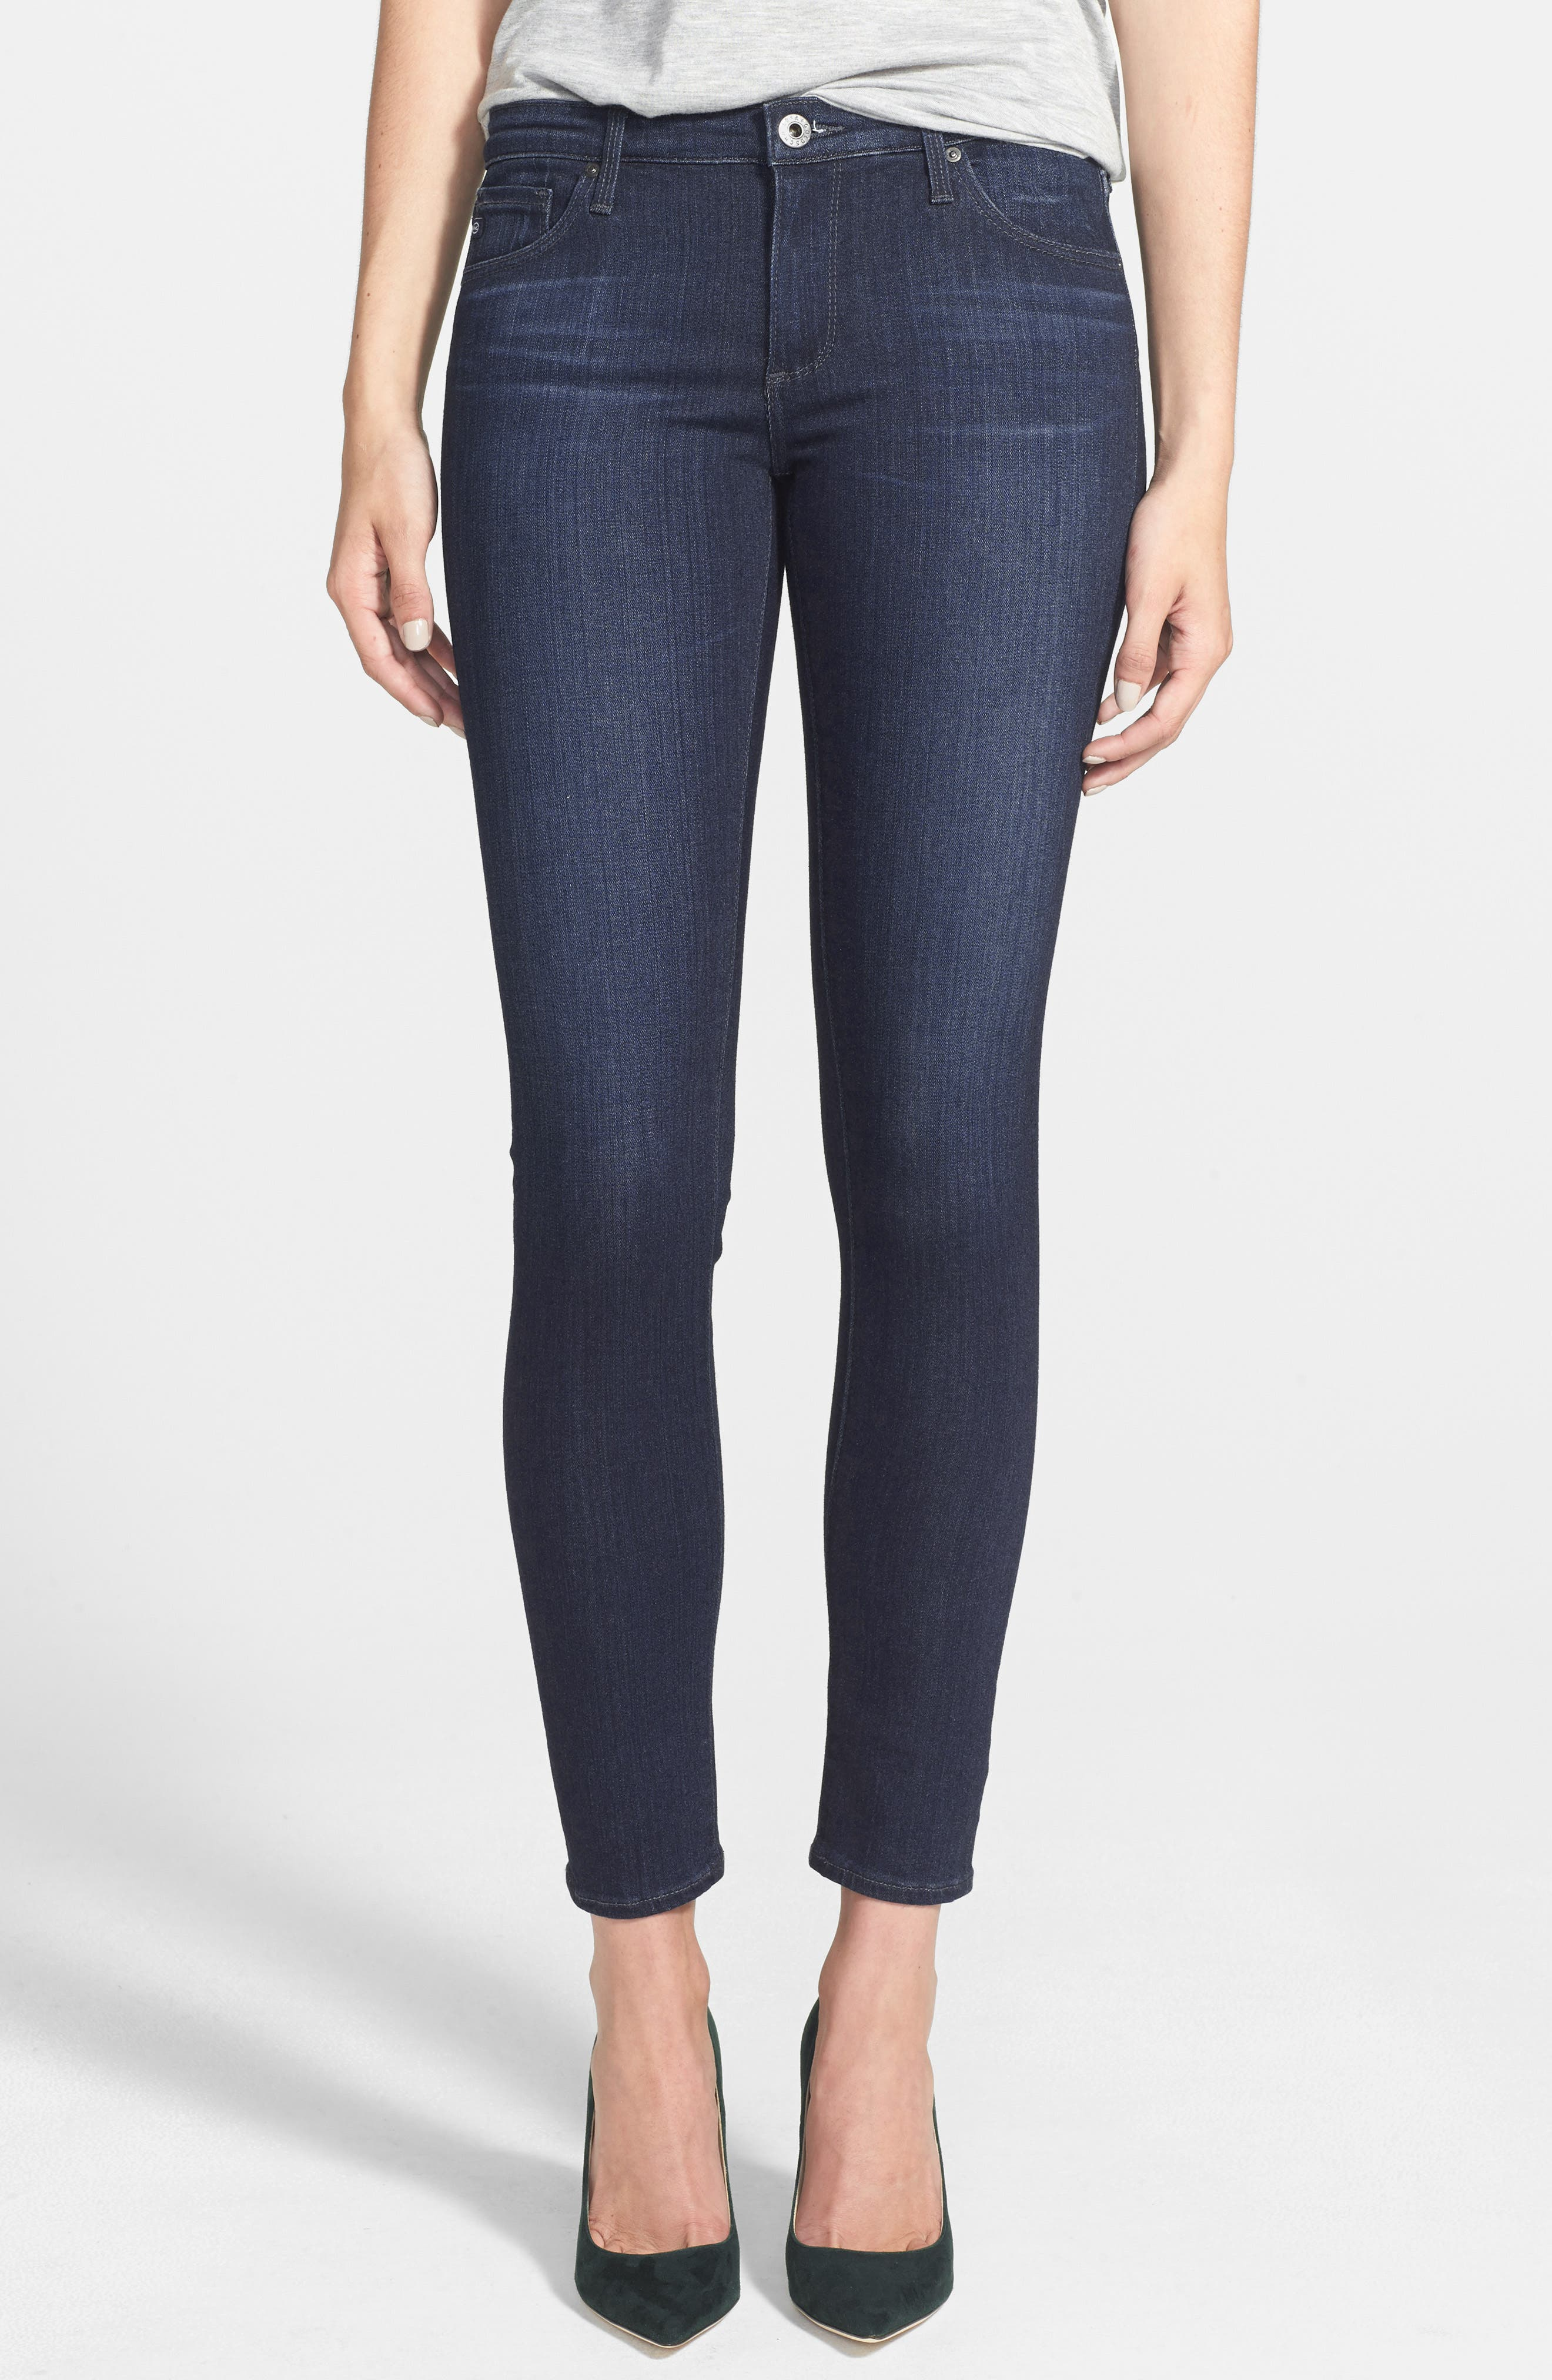 Main Image - AG The Legging Ankle Super Skinny Jeans (Coal Grey)